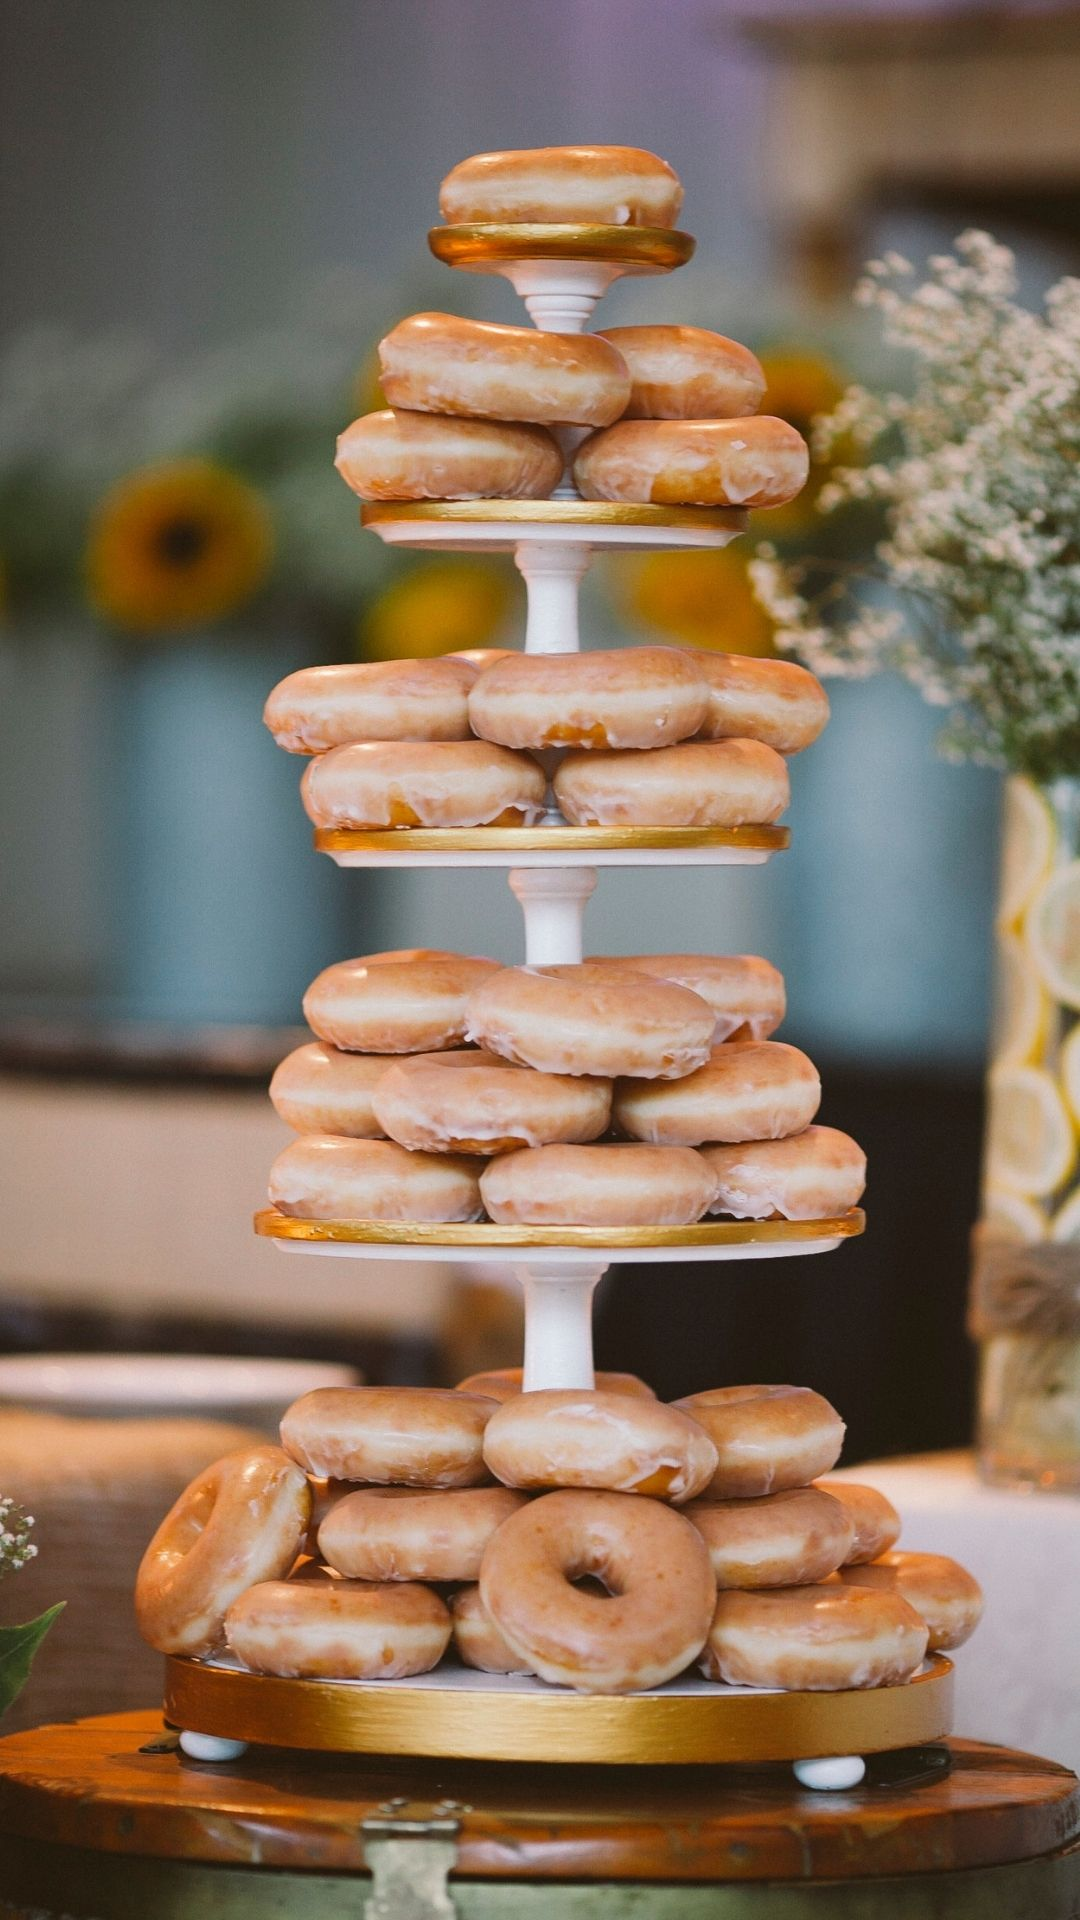 Donuts wedding cake trends 2021